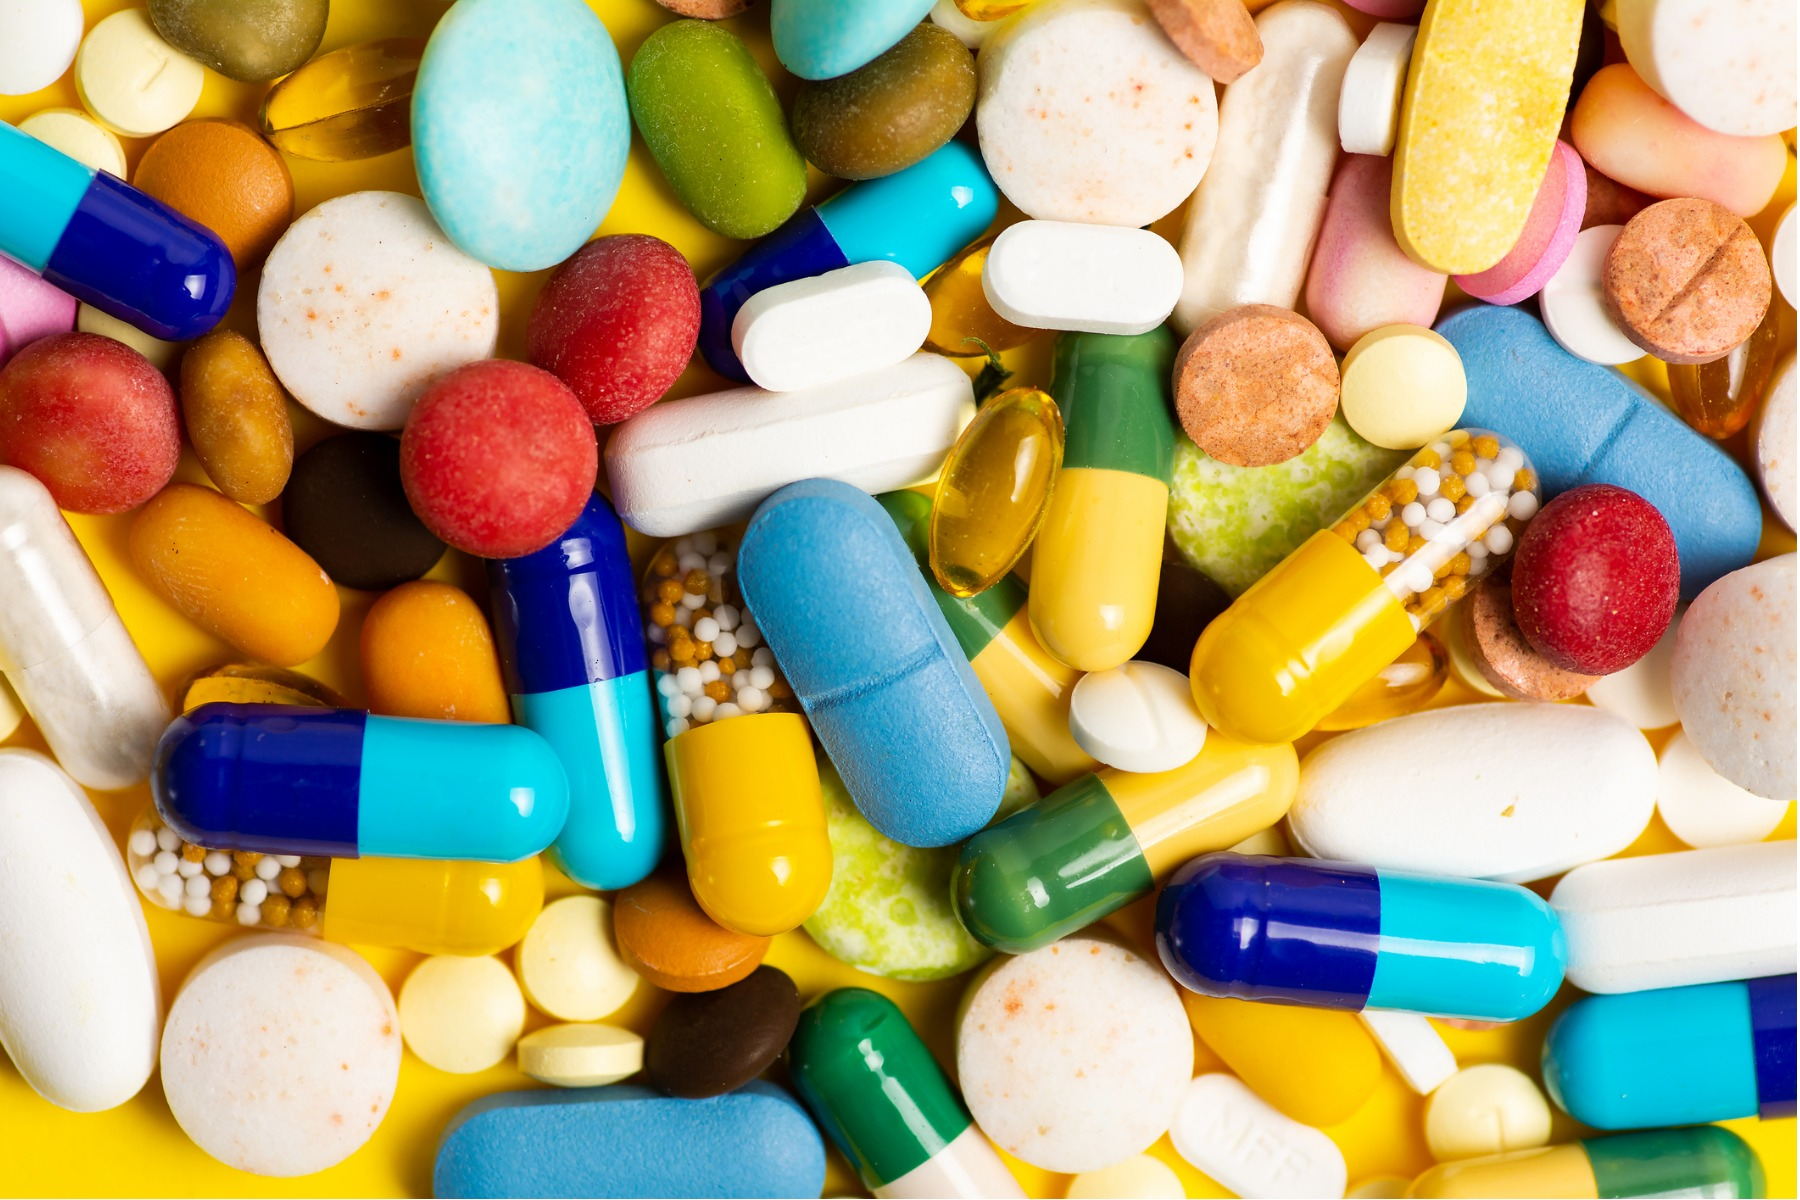 Why Won't Insurance Cover the Medication Your Doctor Prescribed?